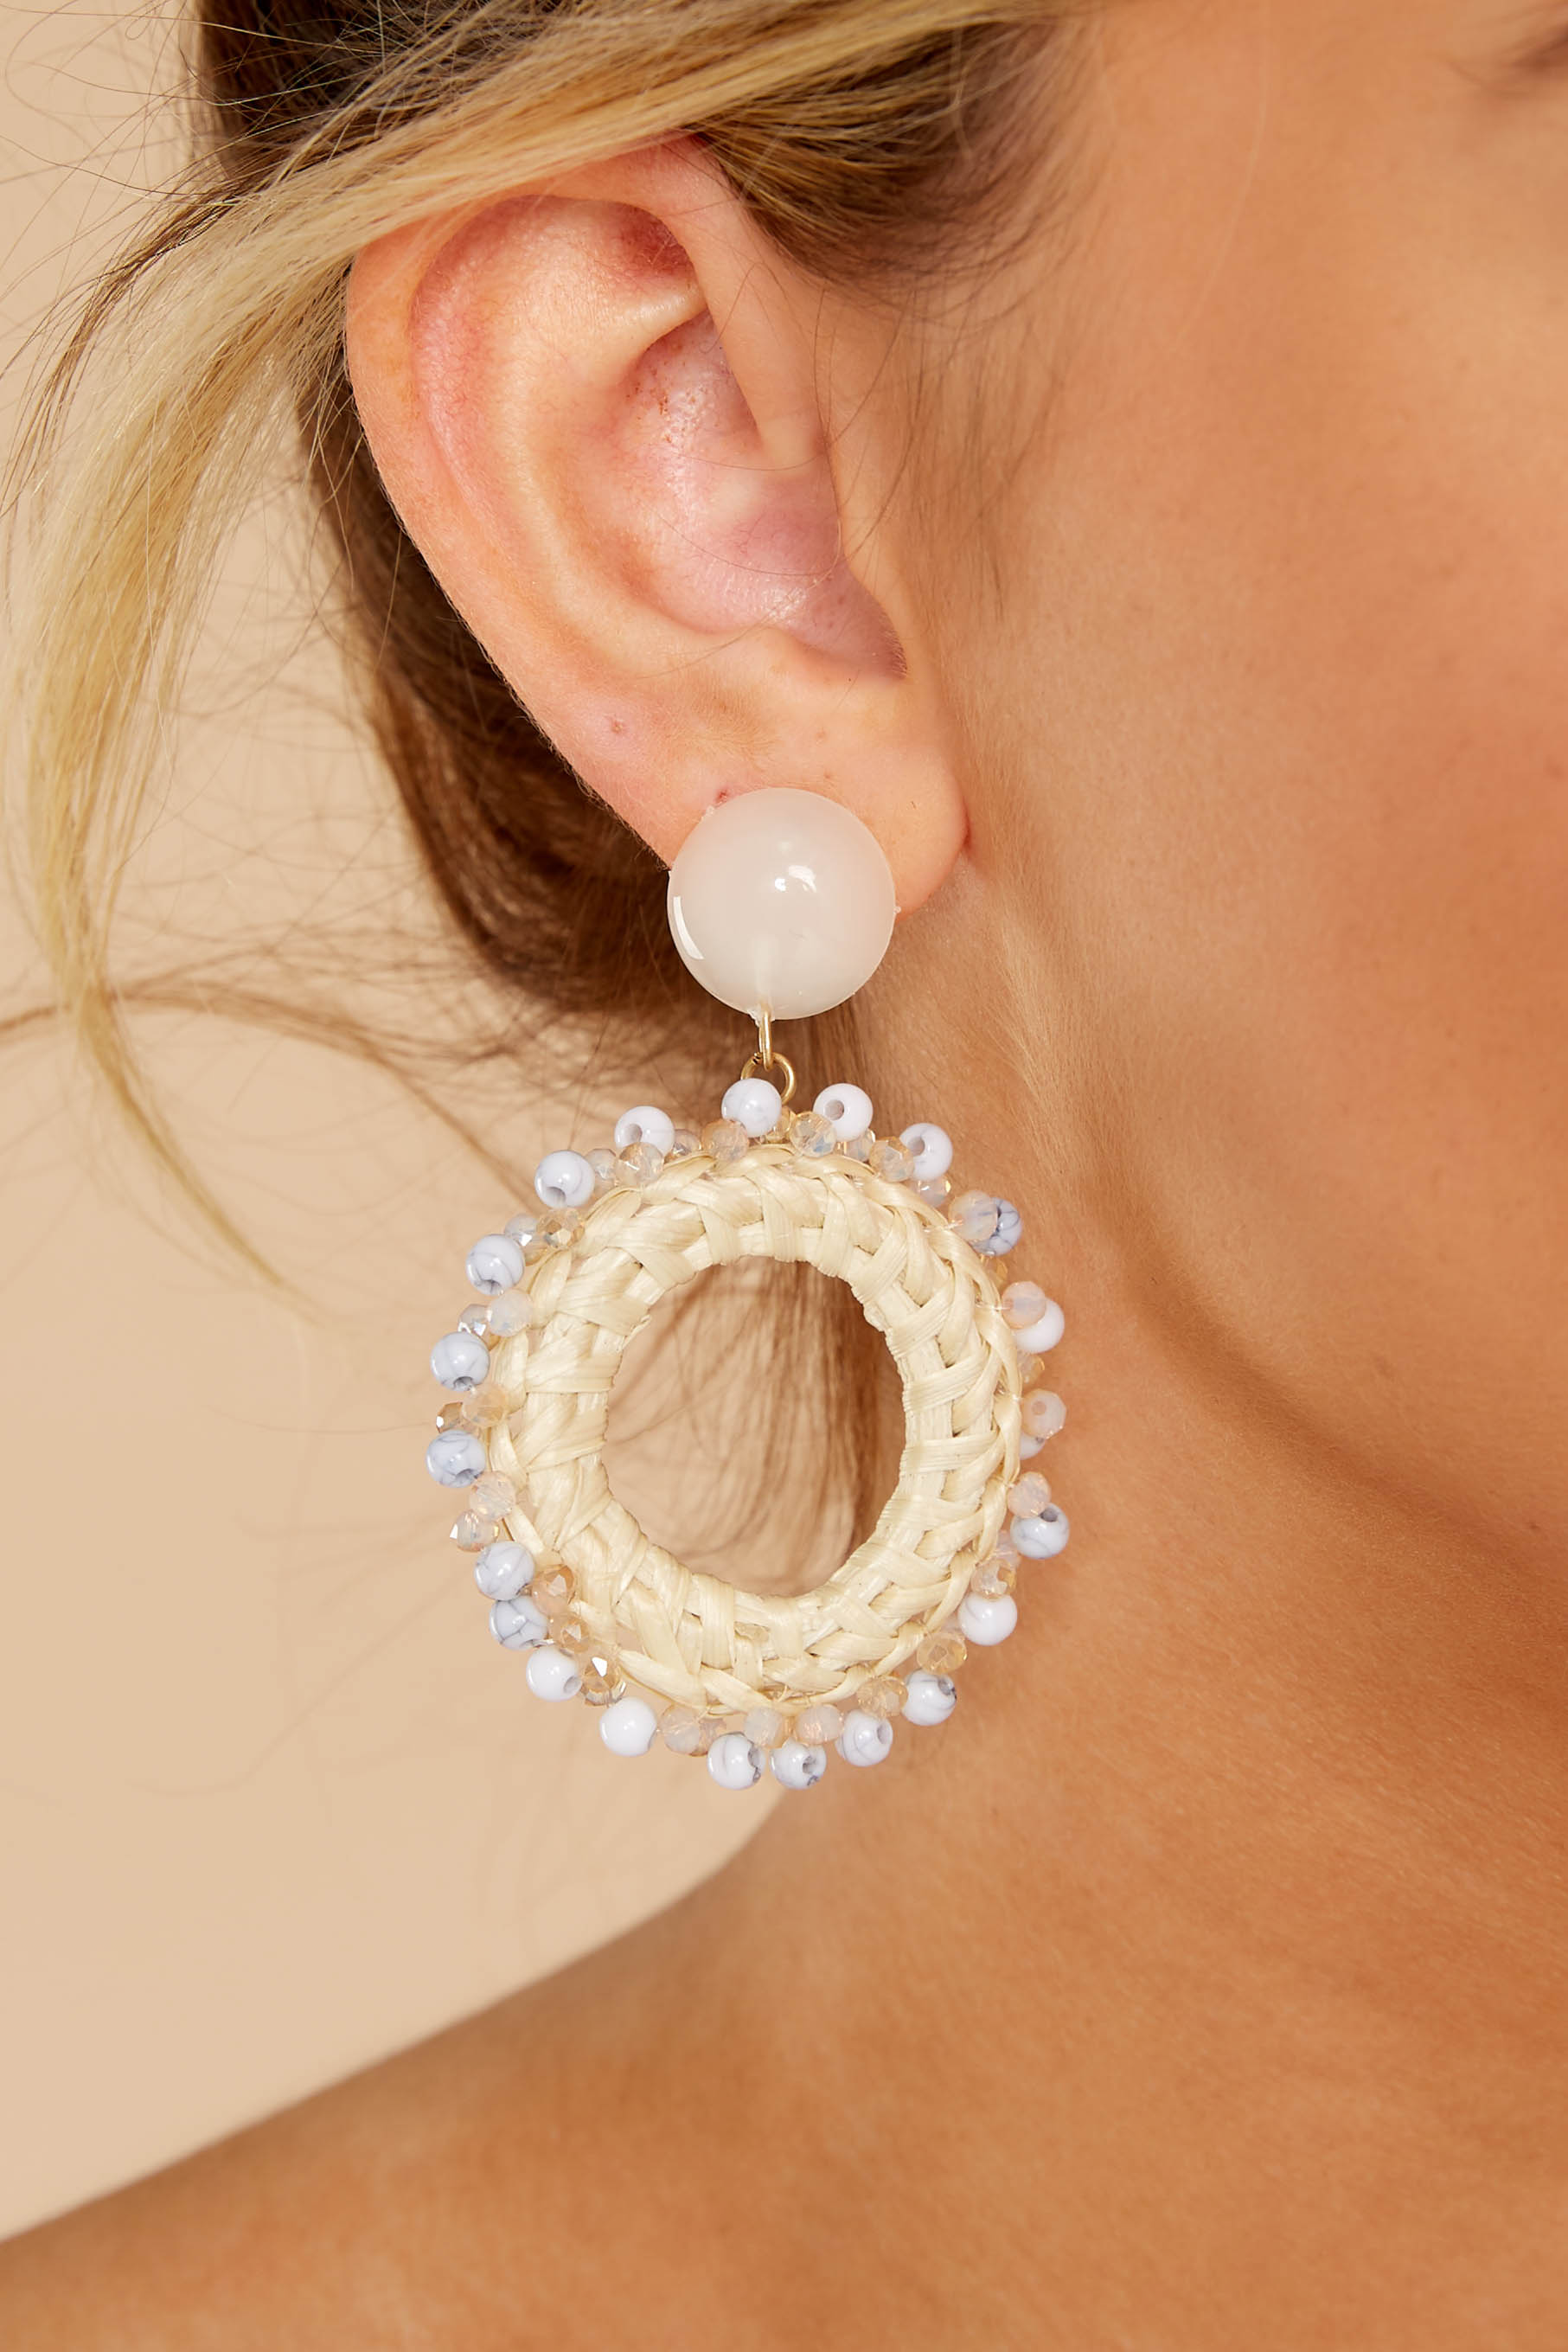 1 By The Moon's Light Off White Earrings at reddressboutique.com